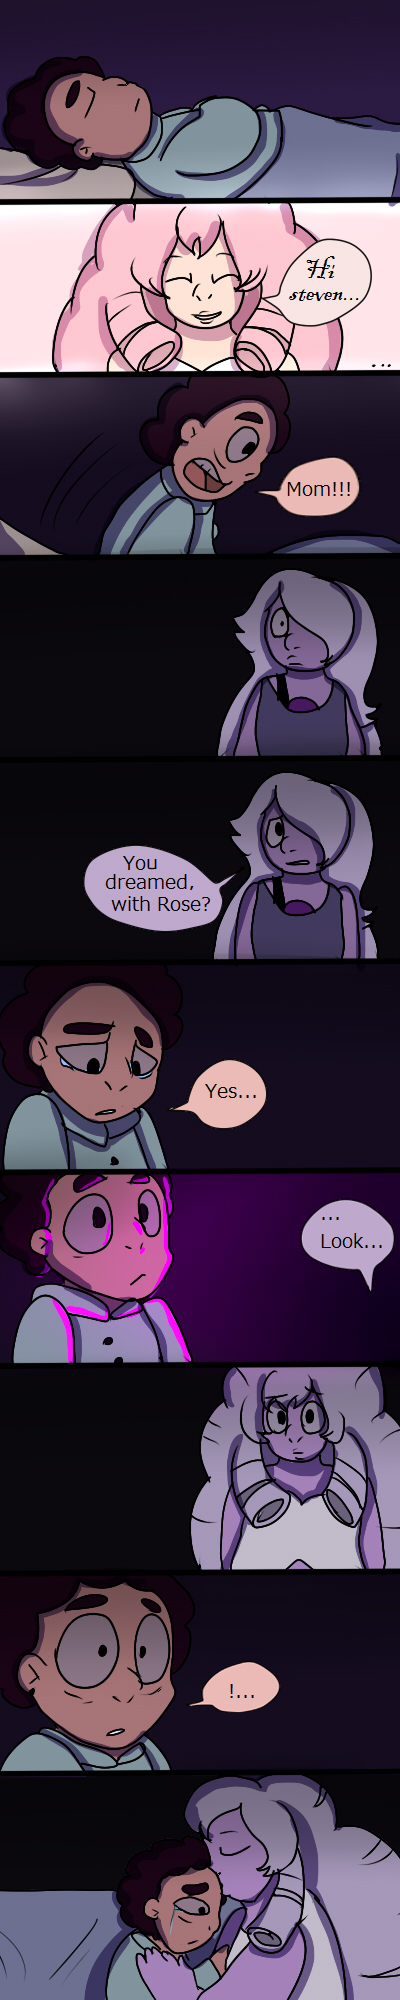 Steven Dream (Comic) by mariogamesandenemies